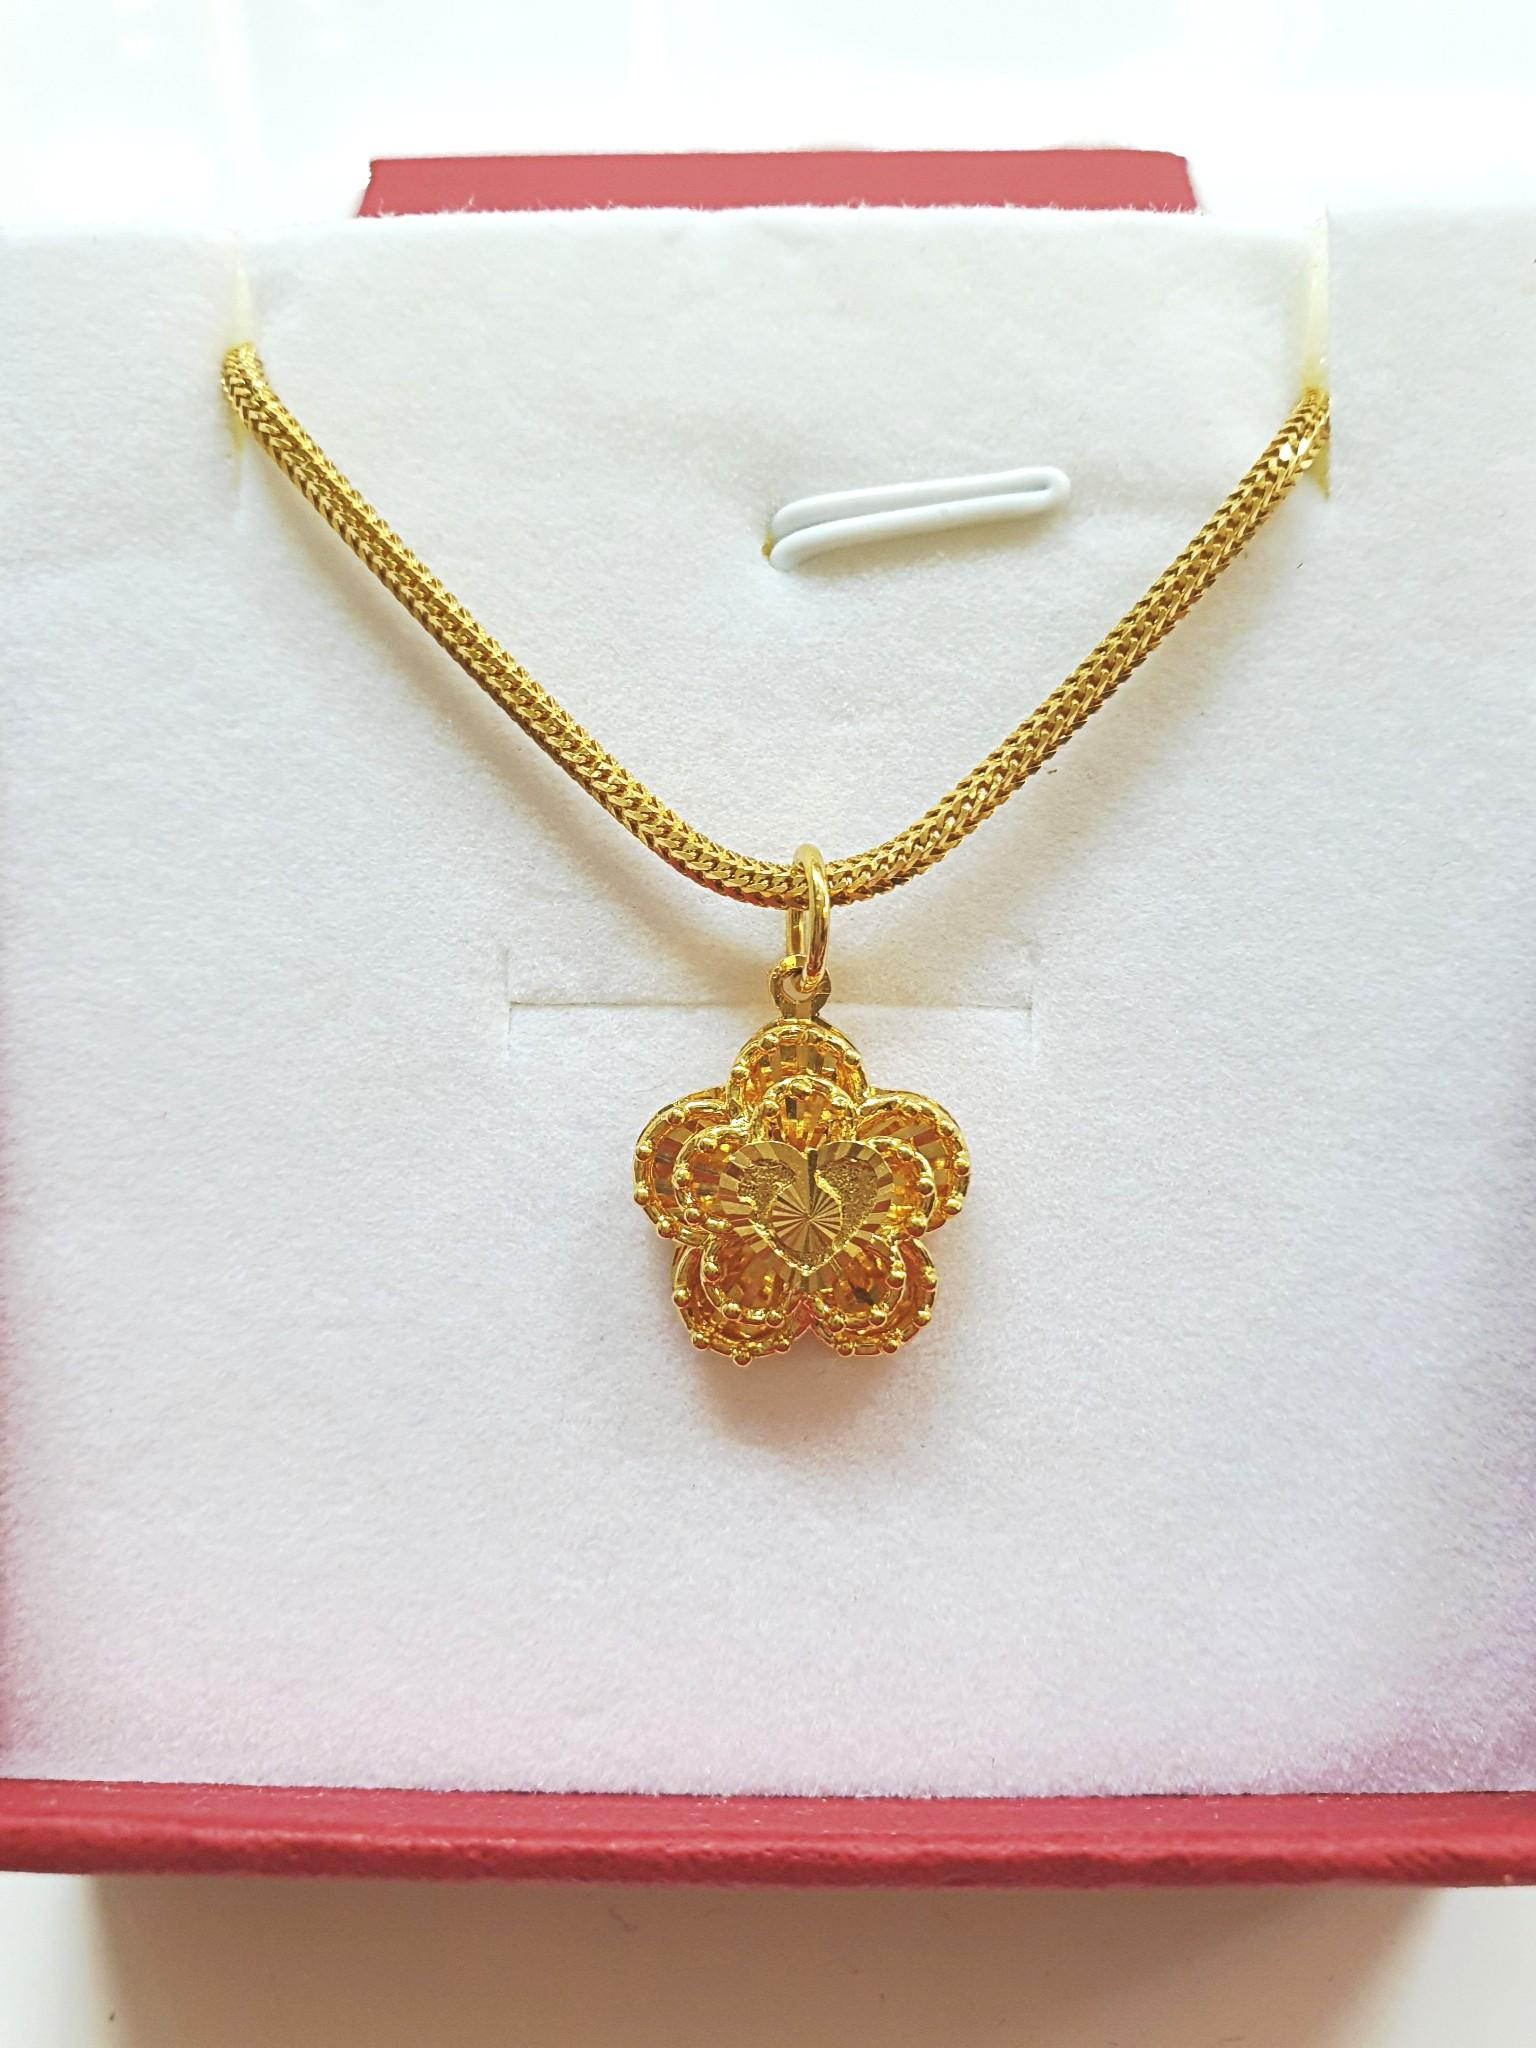 Brand New 100% Authentic 916 Gold Necklace With Pendant {{Only For Sale}} **No Trade** {{Fixed Price}} **定价**